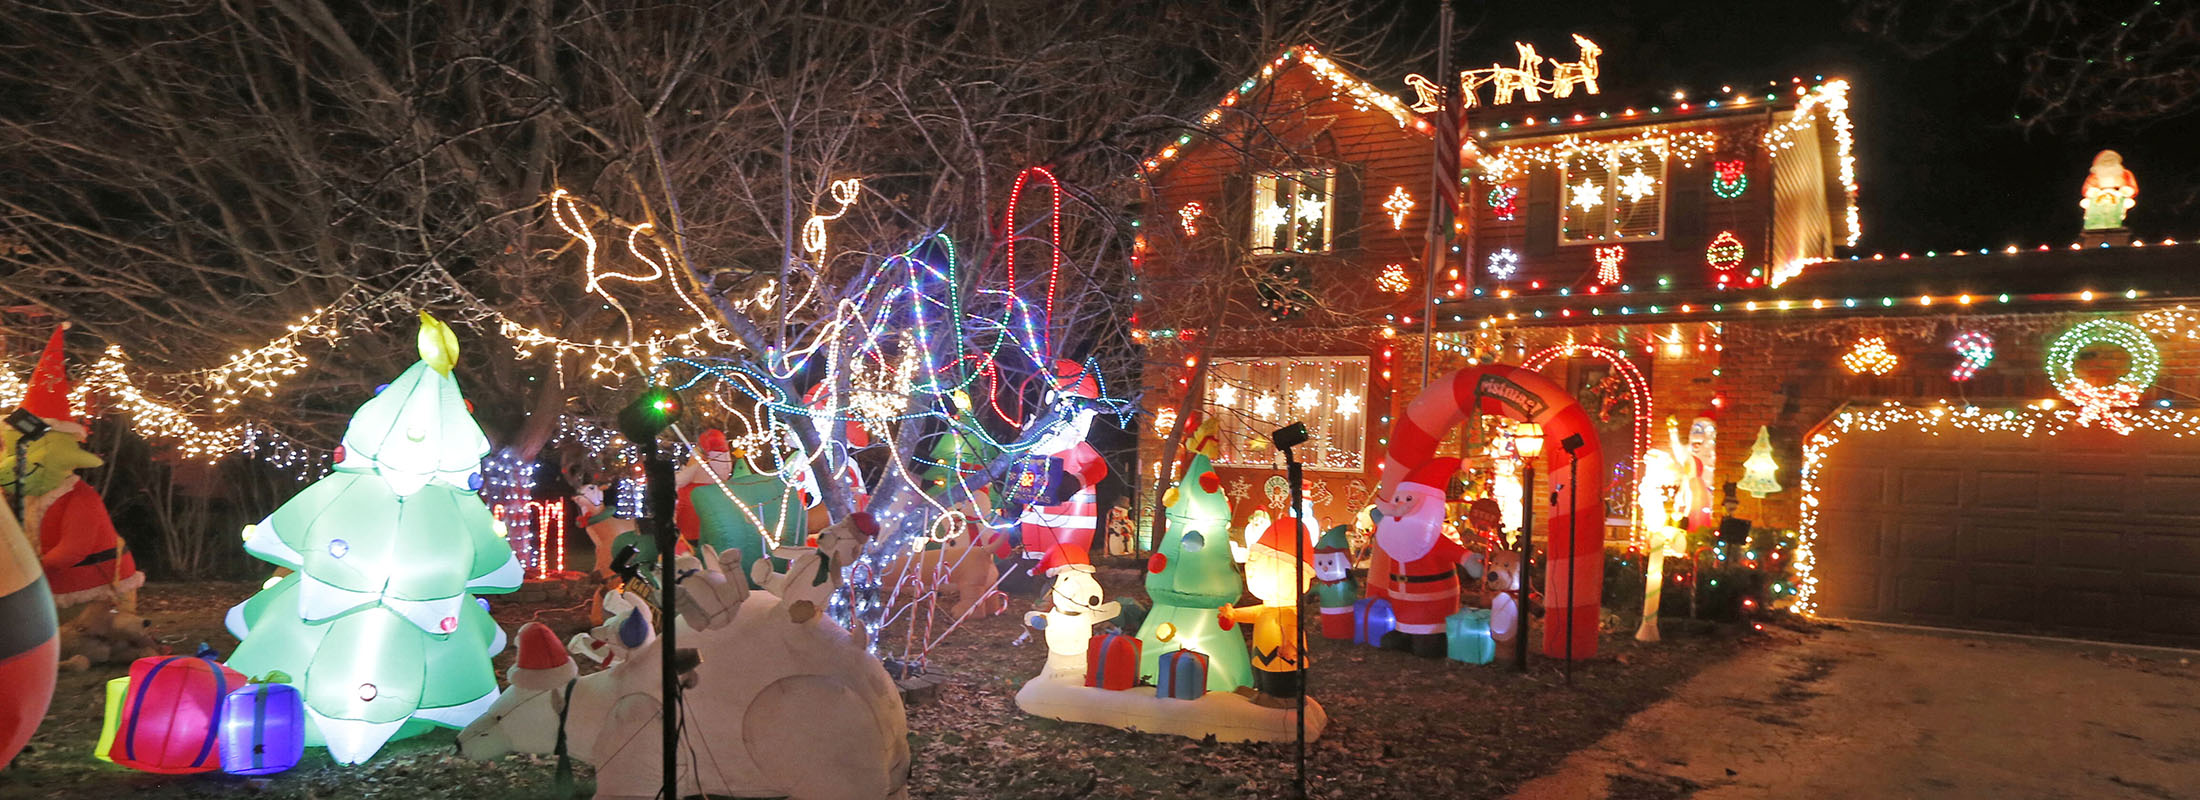 The McPhees have 43 inflatables at their holiday light display in South Cheektowaga. (Robert Kirkham/Buffalo News)